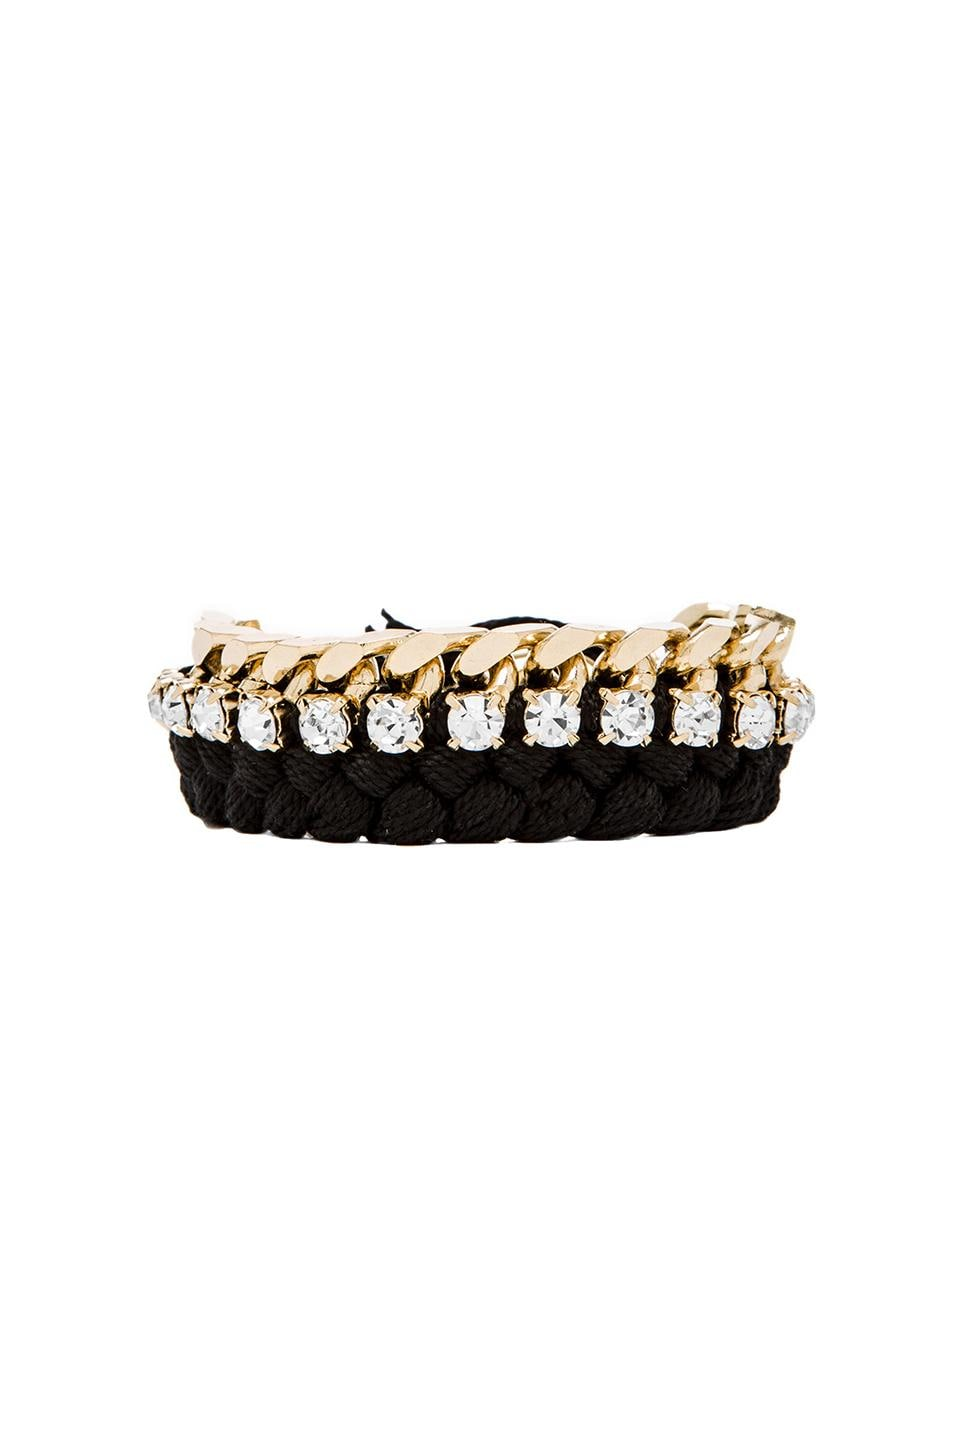 joolz by Martha Calvo Large Kim Bracelet in Gold & Black & Clear Swarovski